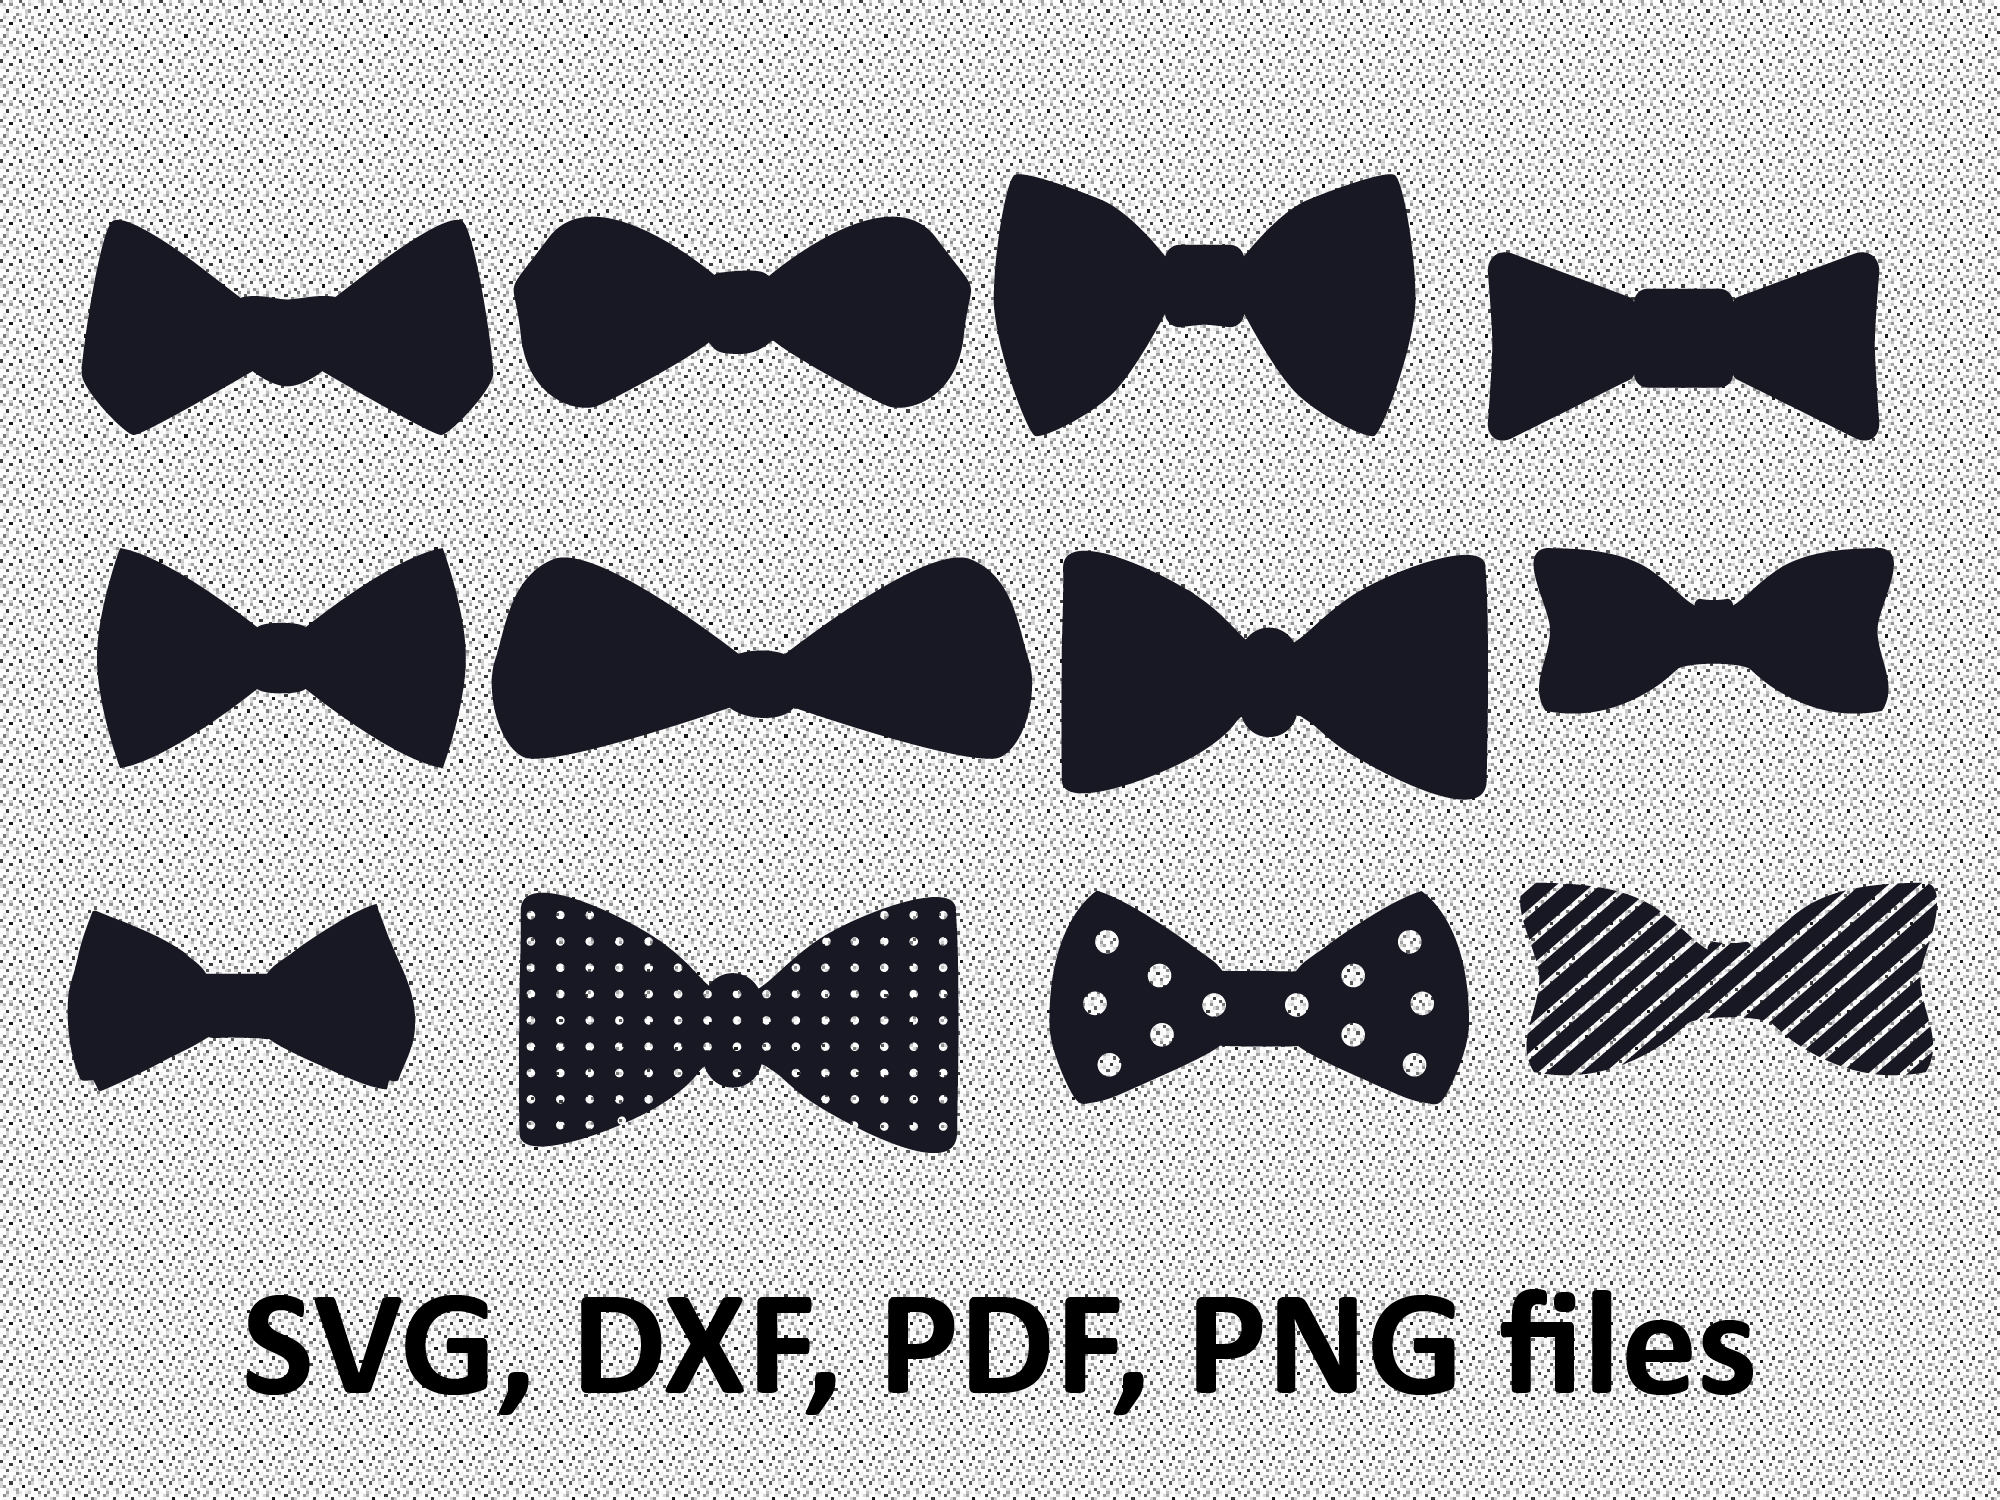 2000x1500 Bow Tie Svg File Bow Tie Clipart Bow Tie Silhouette File Etsy